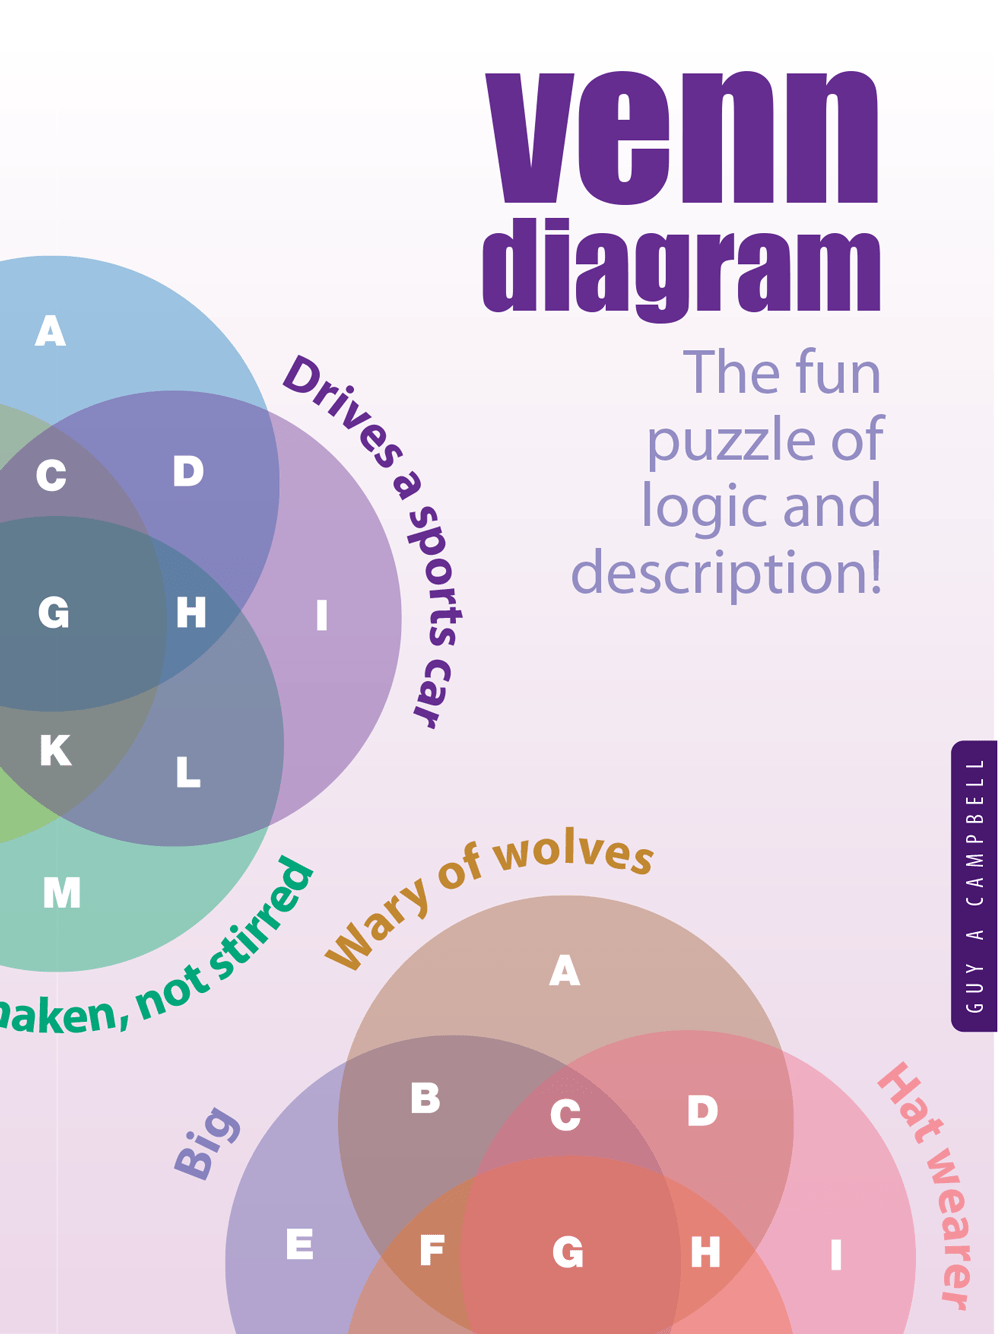 venn diagram puzzles megaflow wiring s plan lit knight features content worth sharing fun